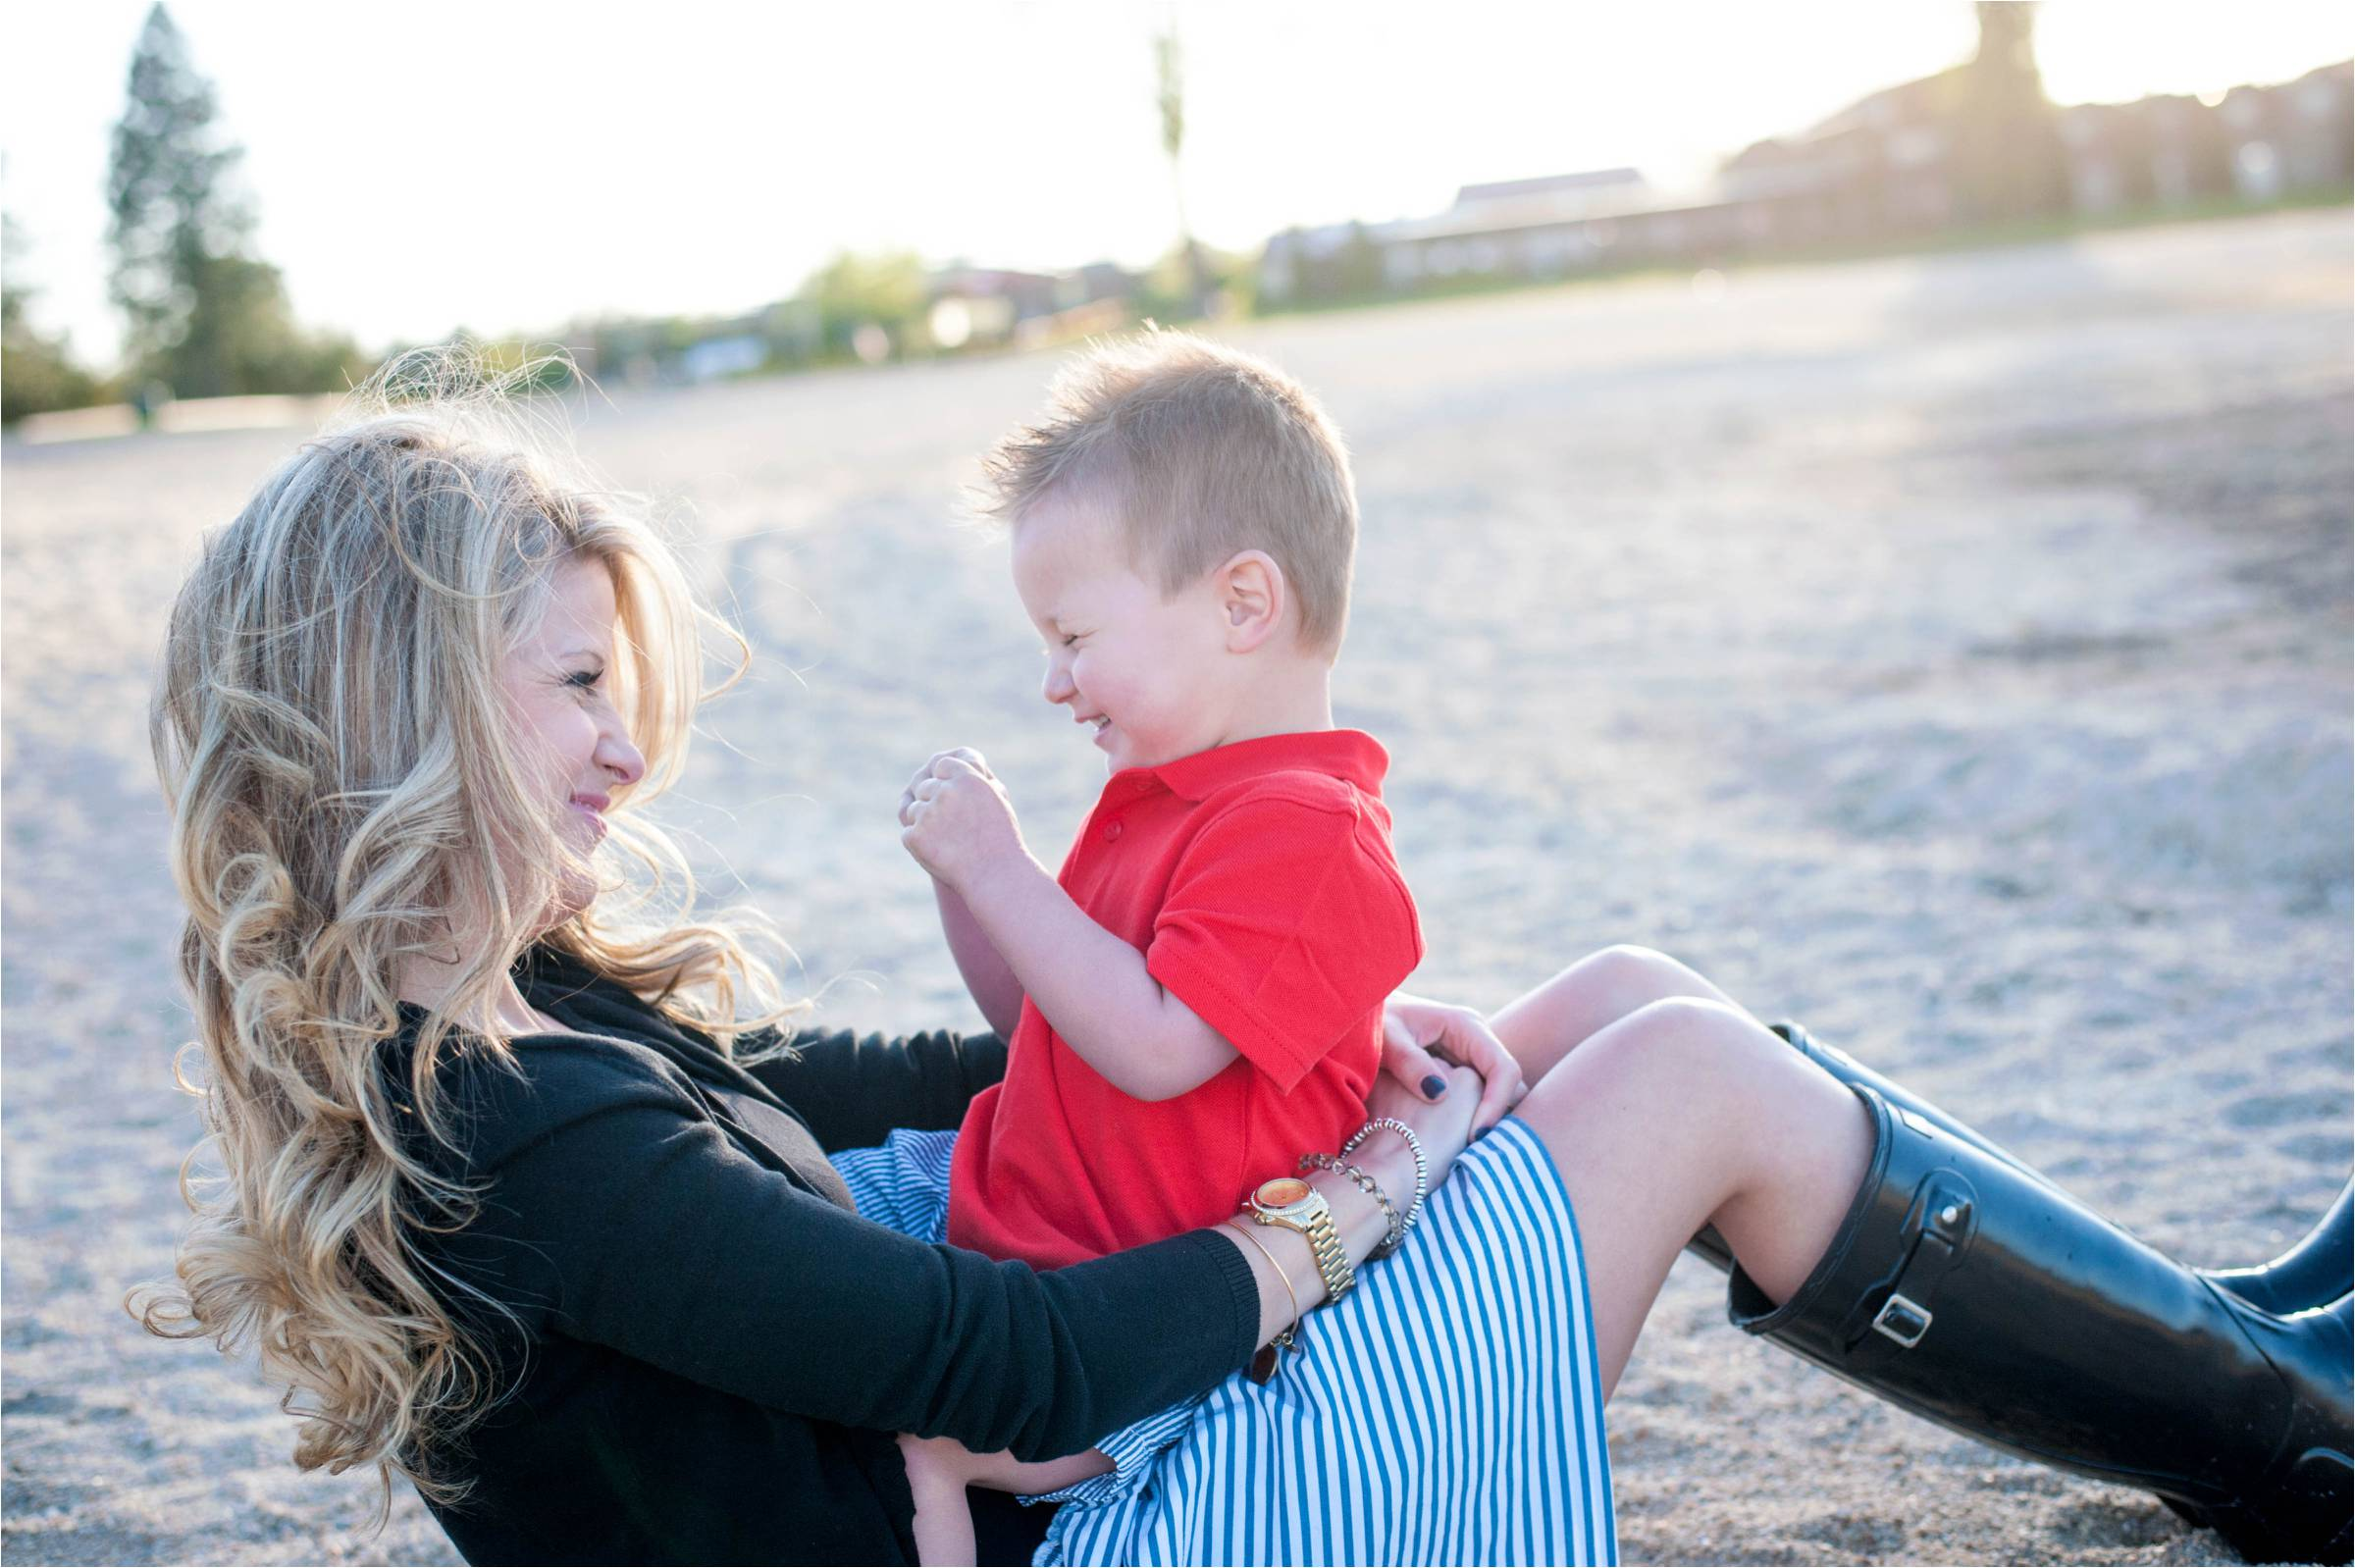 Janel-Gion-Photography-and-Design-Mommy-and-Me-Summer-Photo-Session-Sandpoint-Idaho_0015.jpg